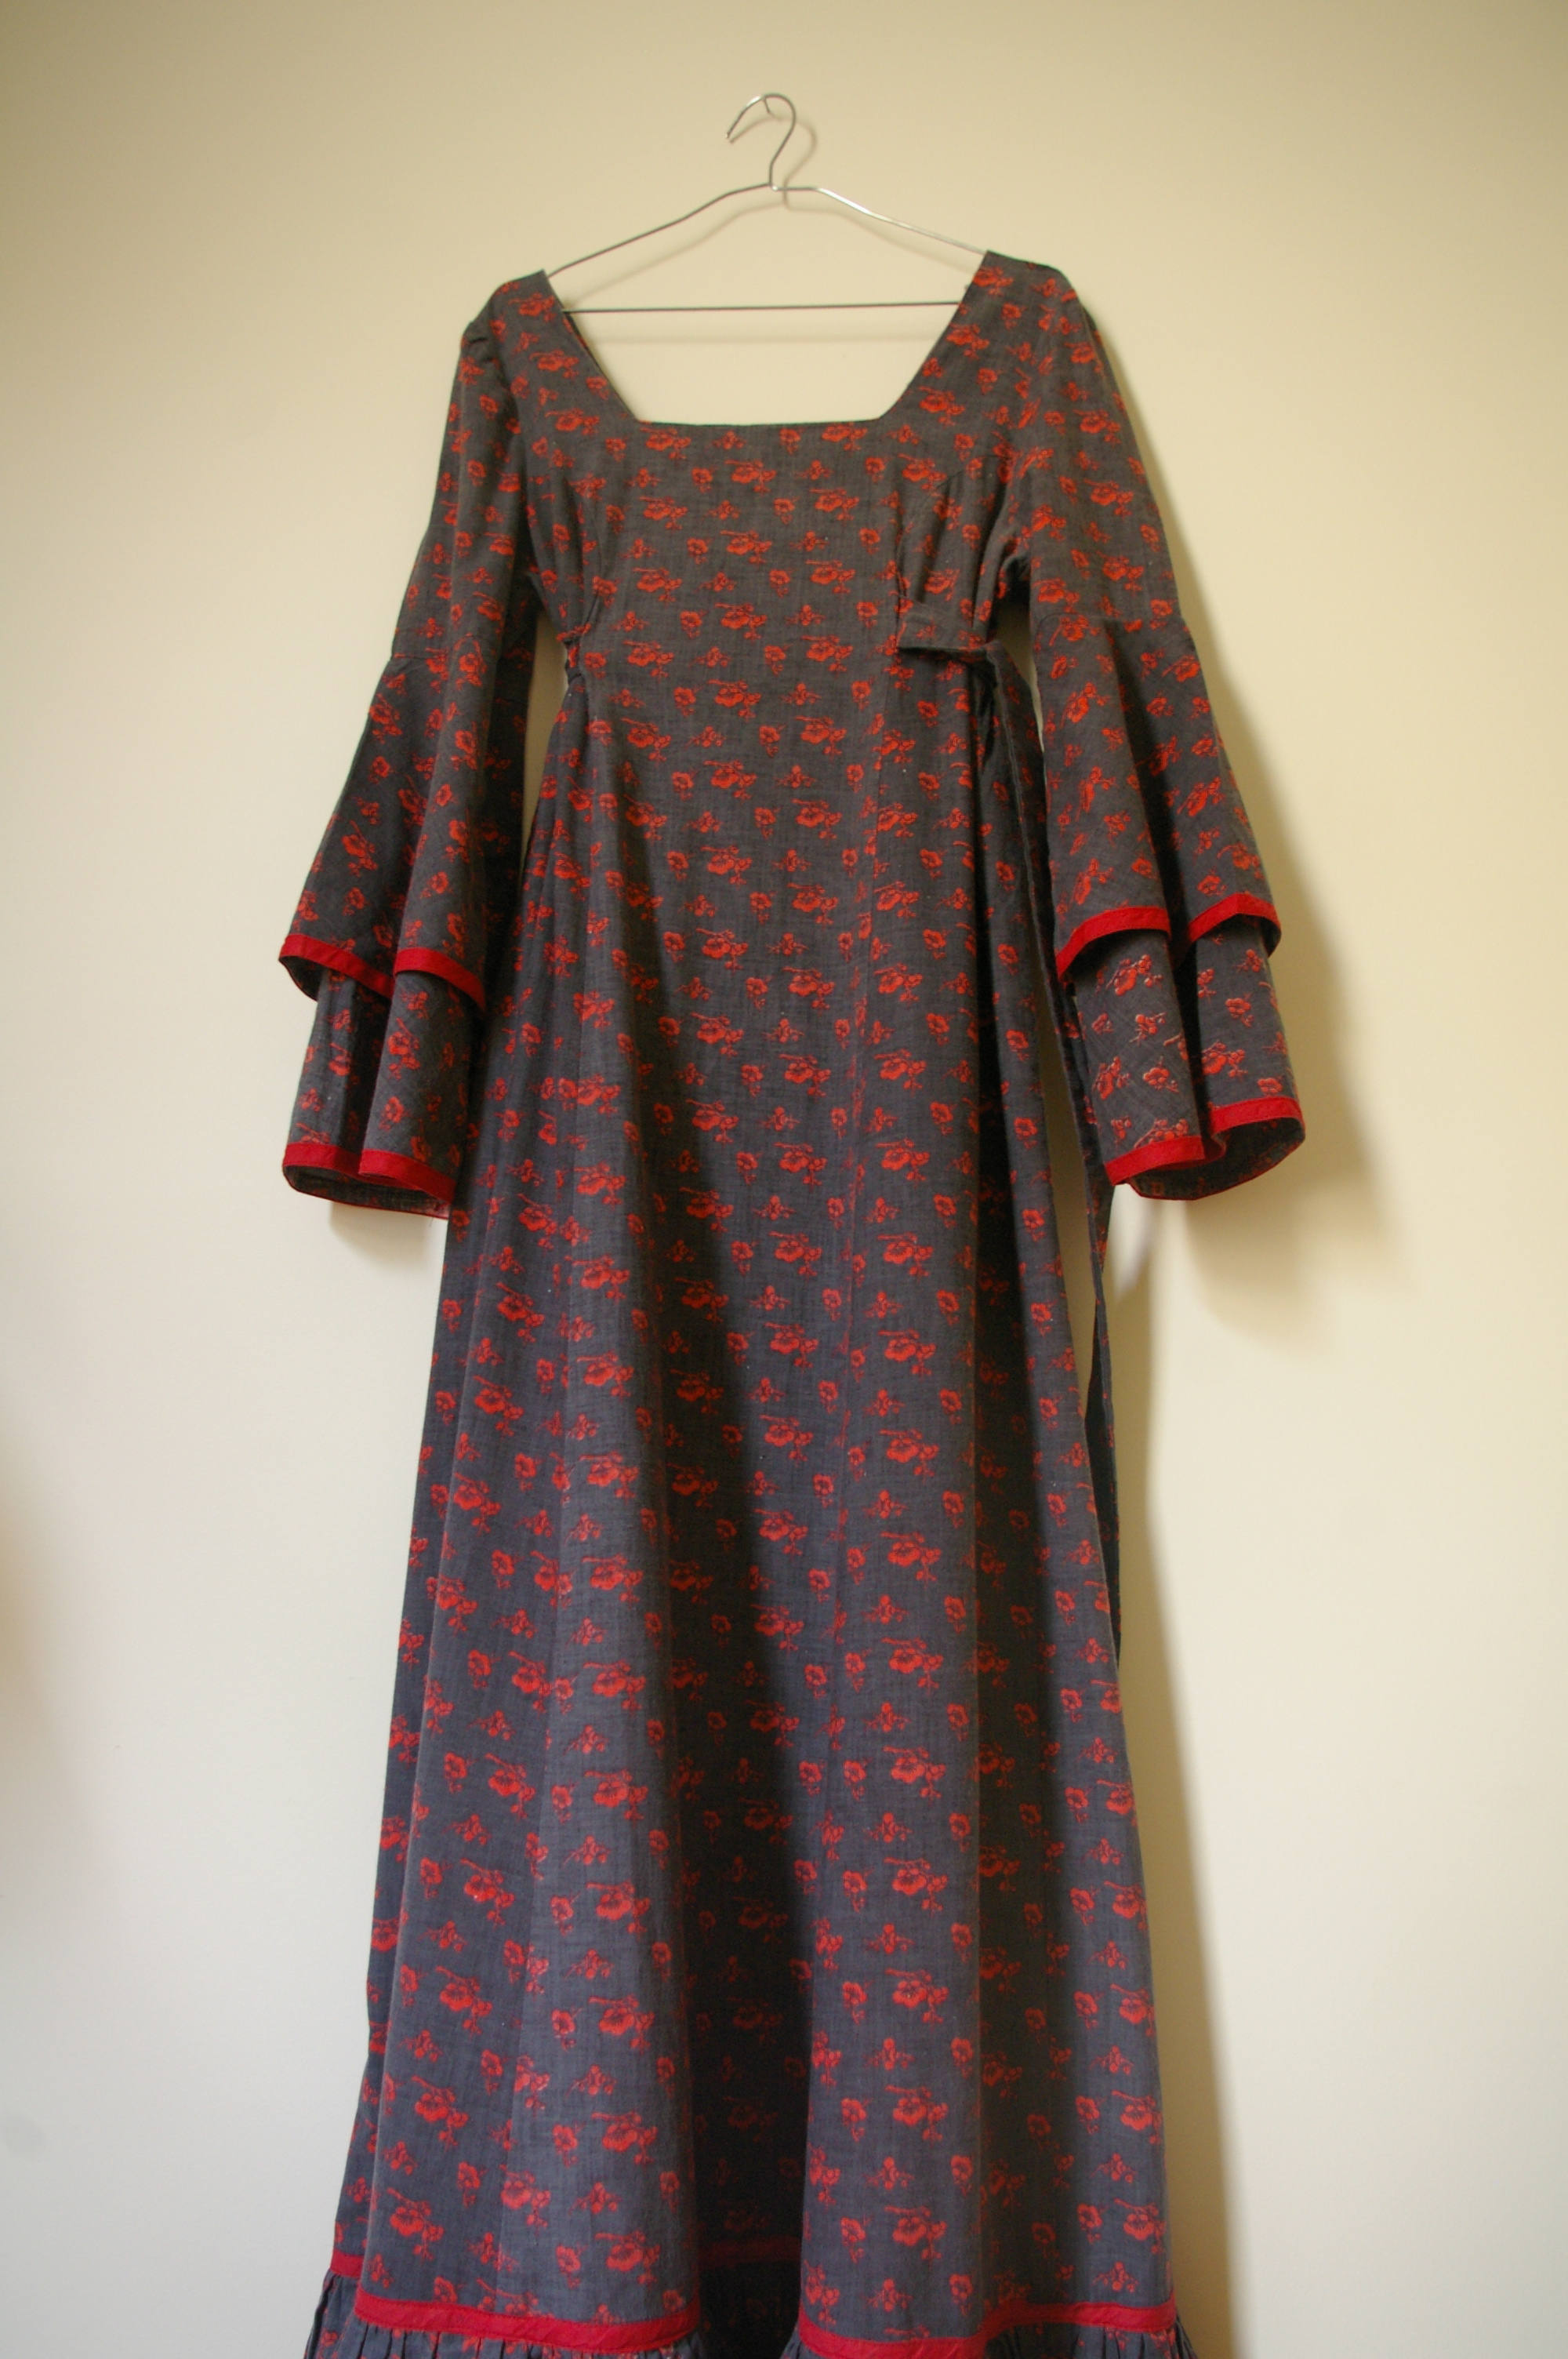 Vintage laura ashley dresses